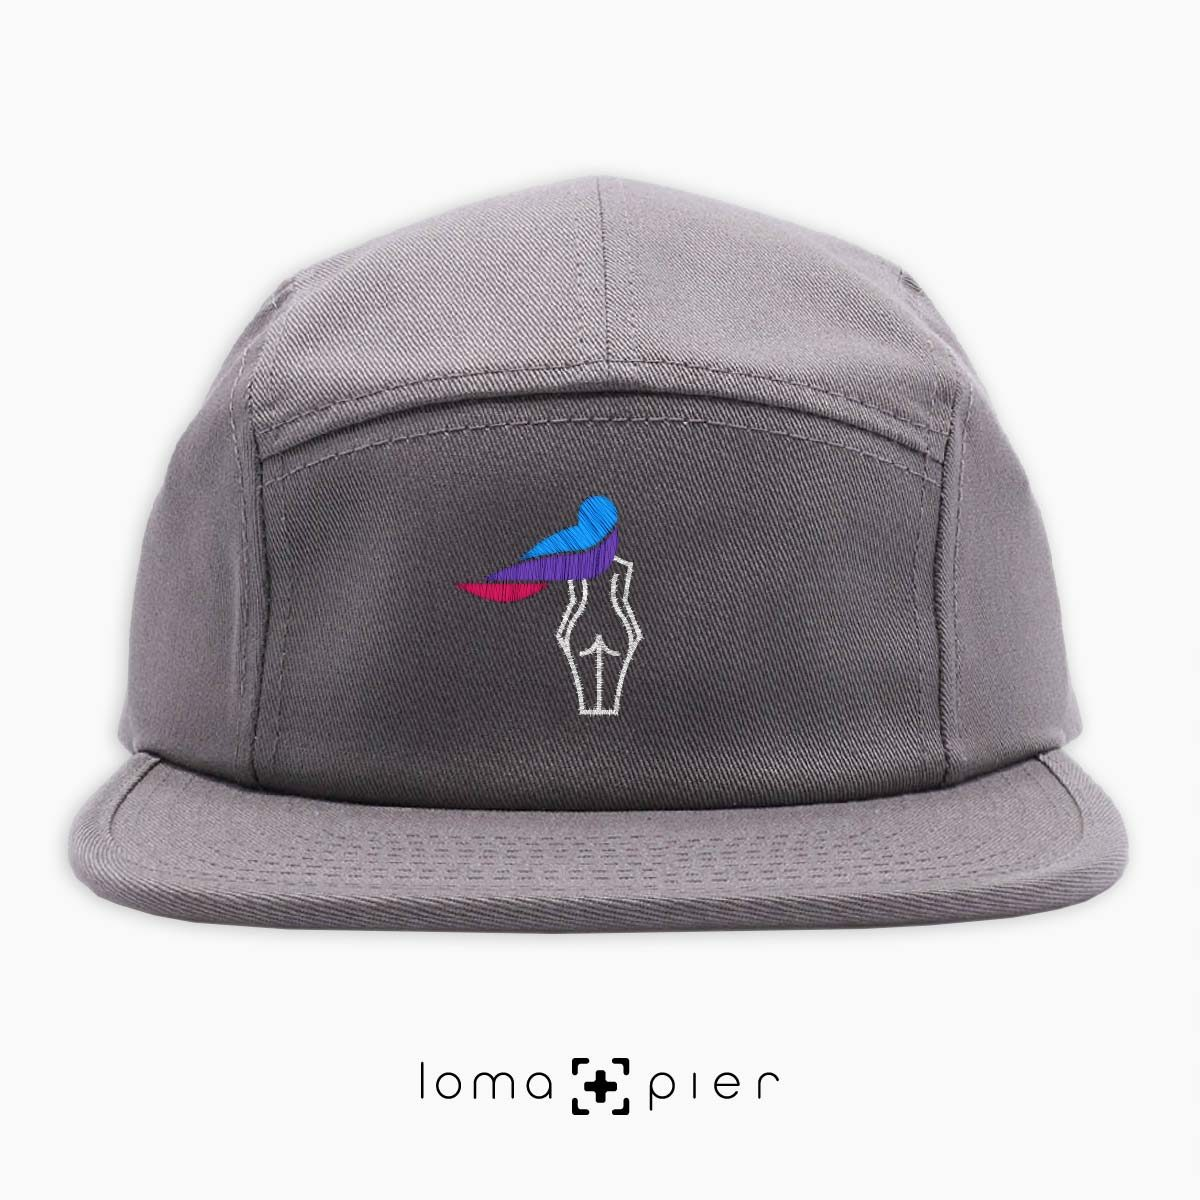 WAVY BEACH icon embroidered on a grey cotton 5-panel hat with multicolor thread by loma+pier hat store